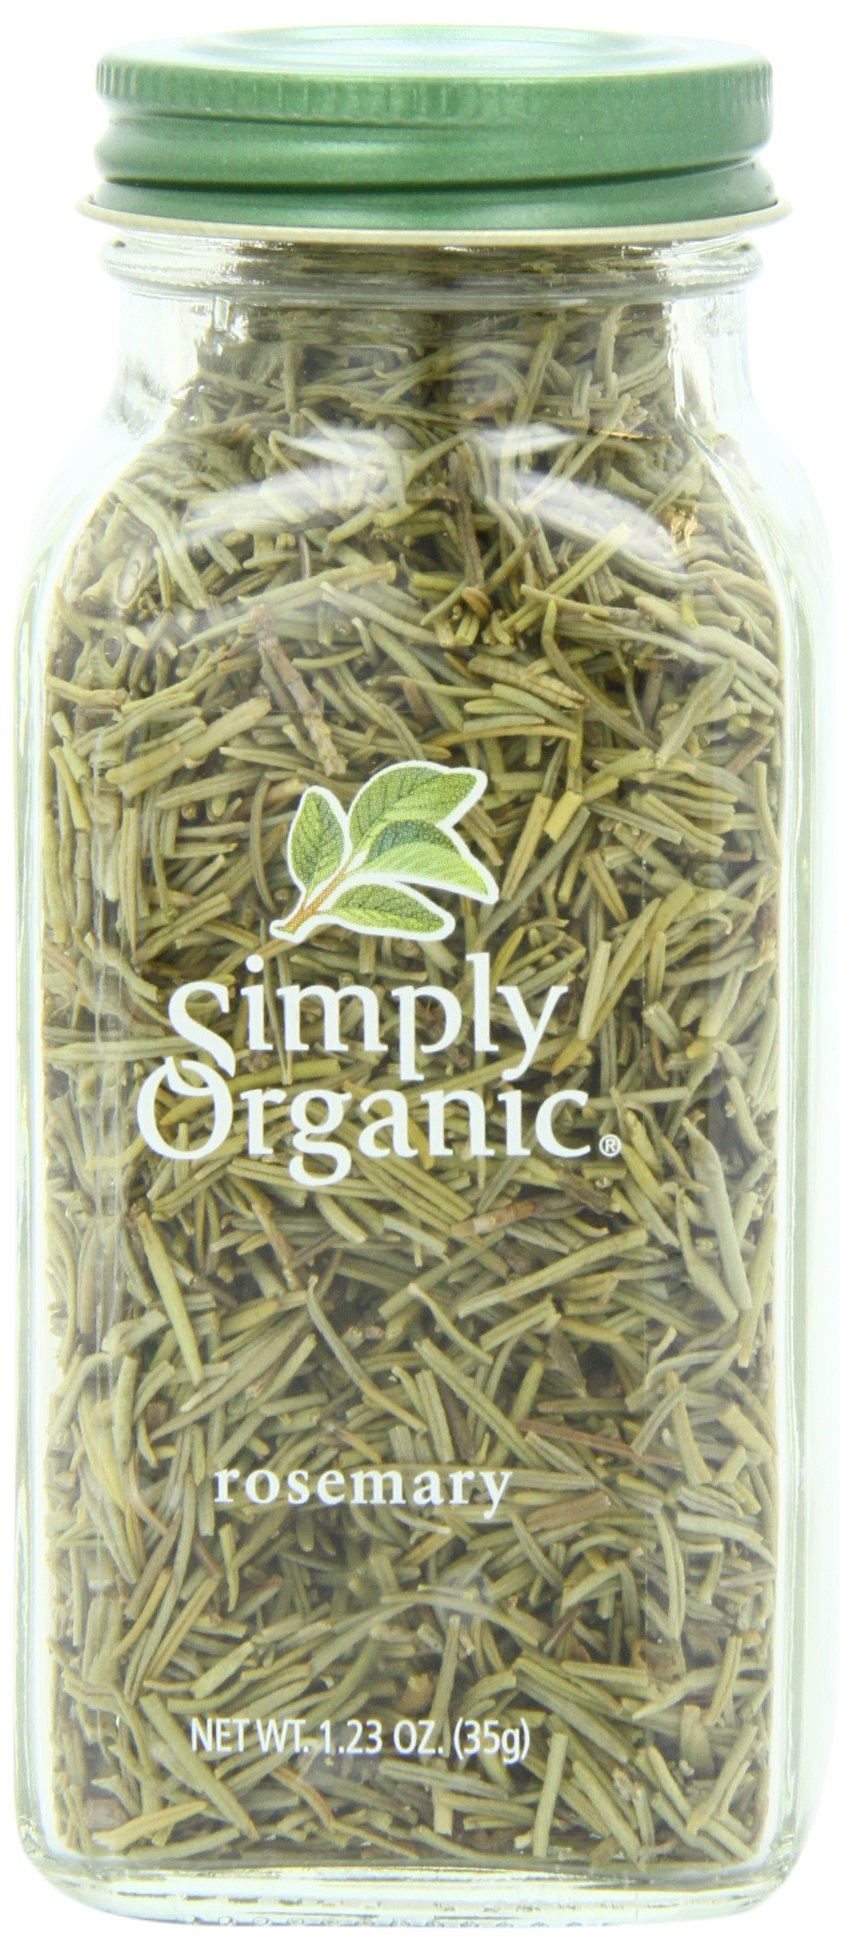 Simply Organic Rosemary Leaf Whole Certified Organic, 1.23-Ounce Container by Simply Organic (Image #1)